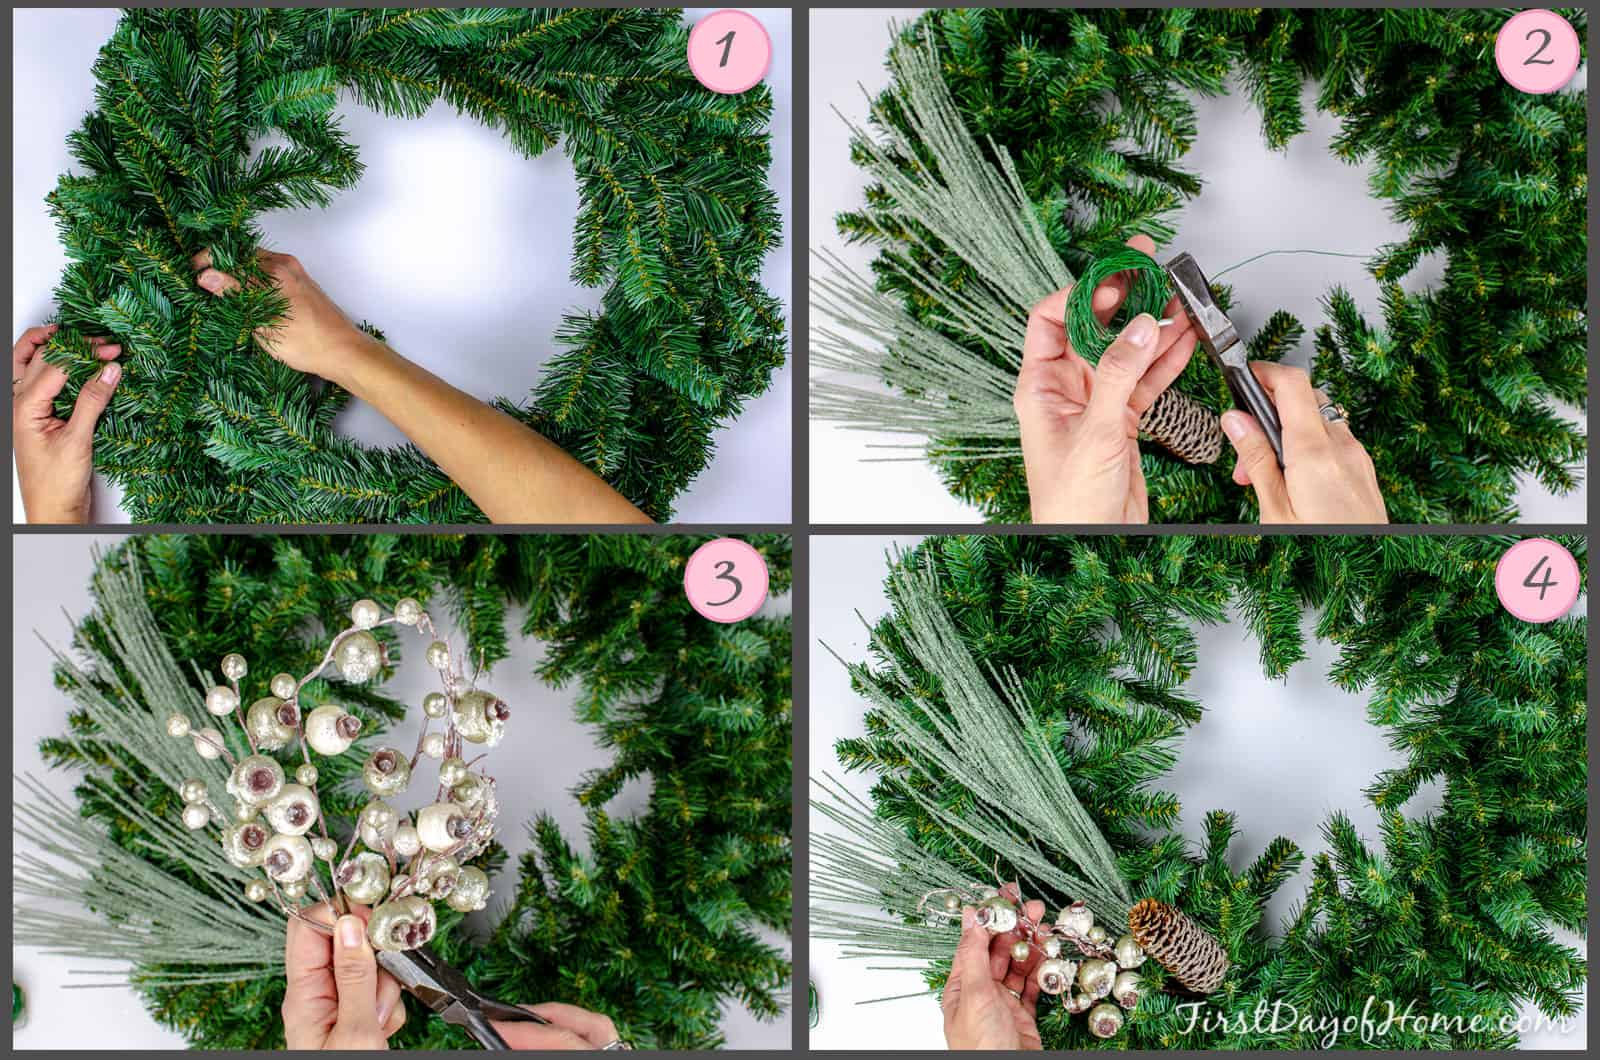 Steps for making a homemade Christmas wreath from scratch